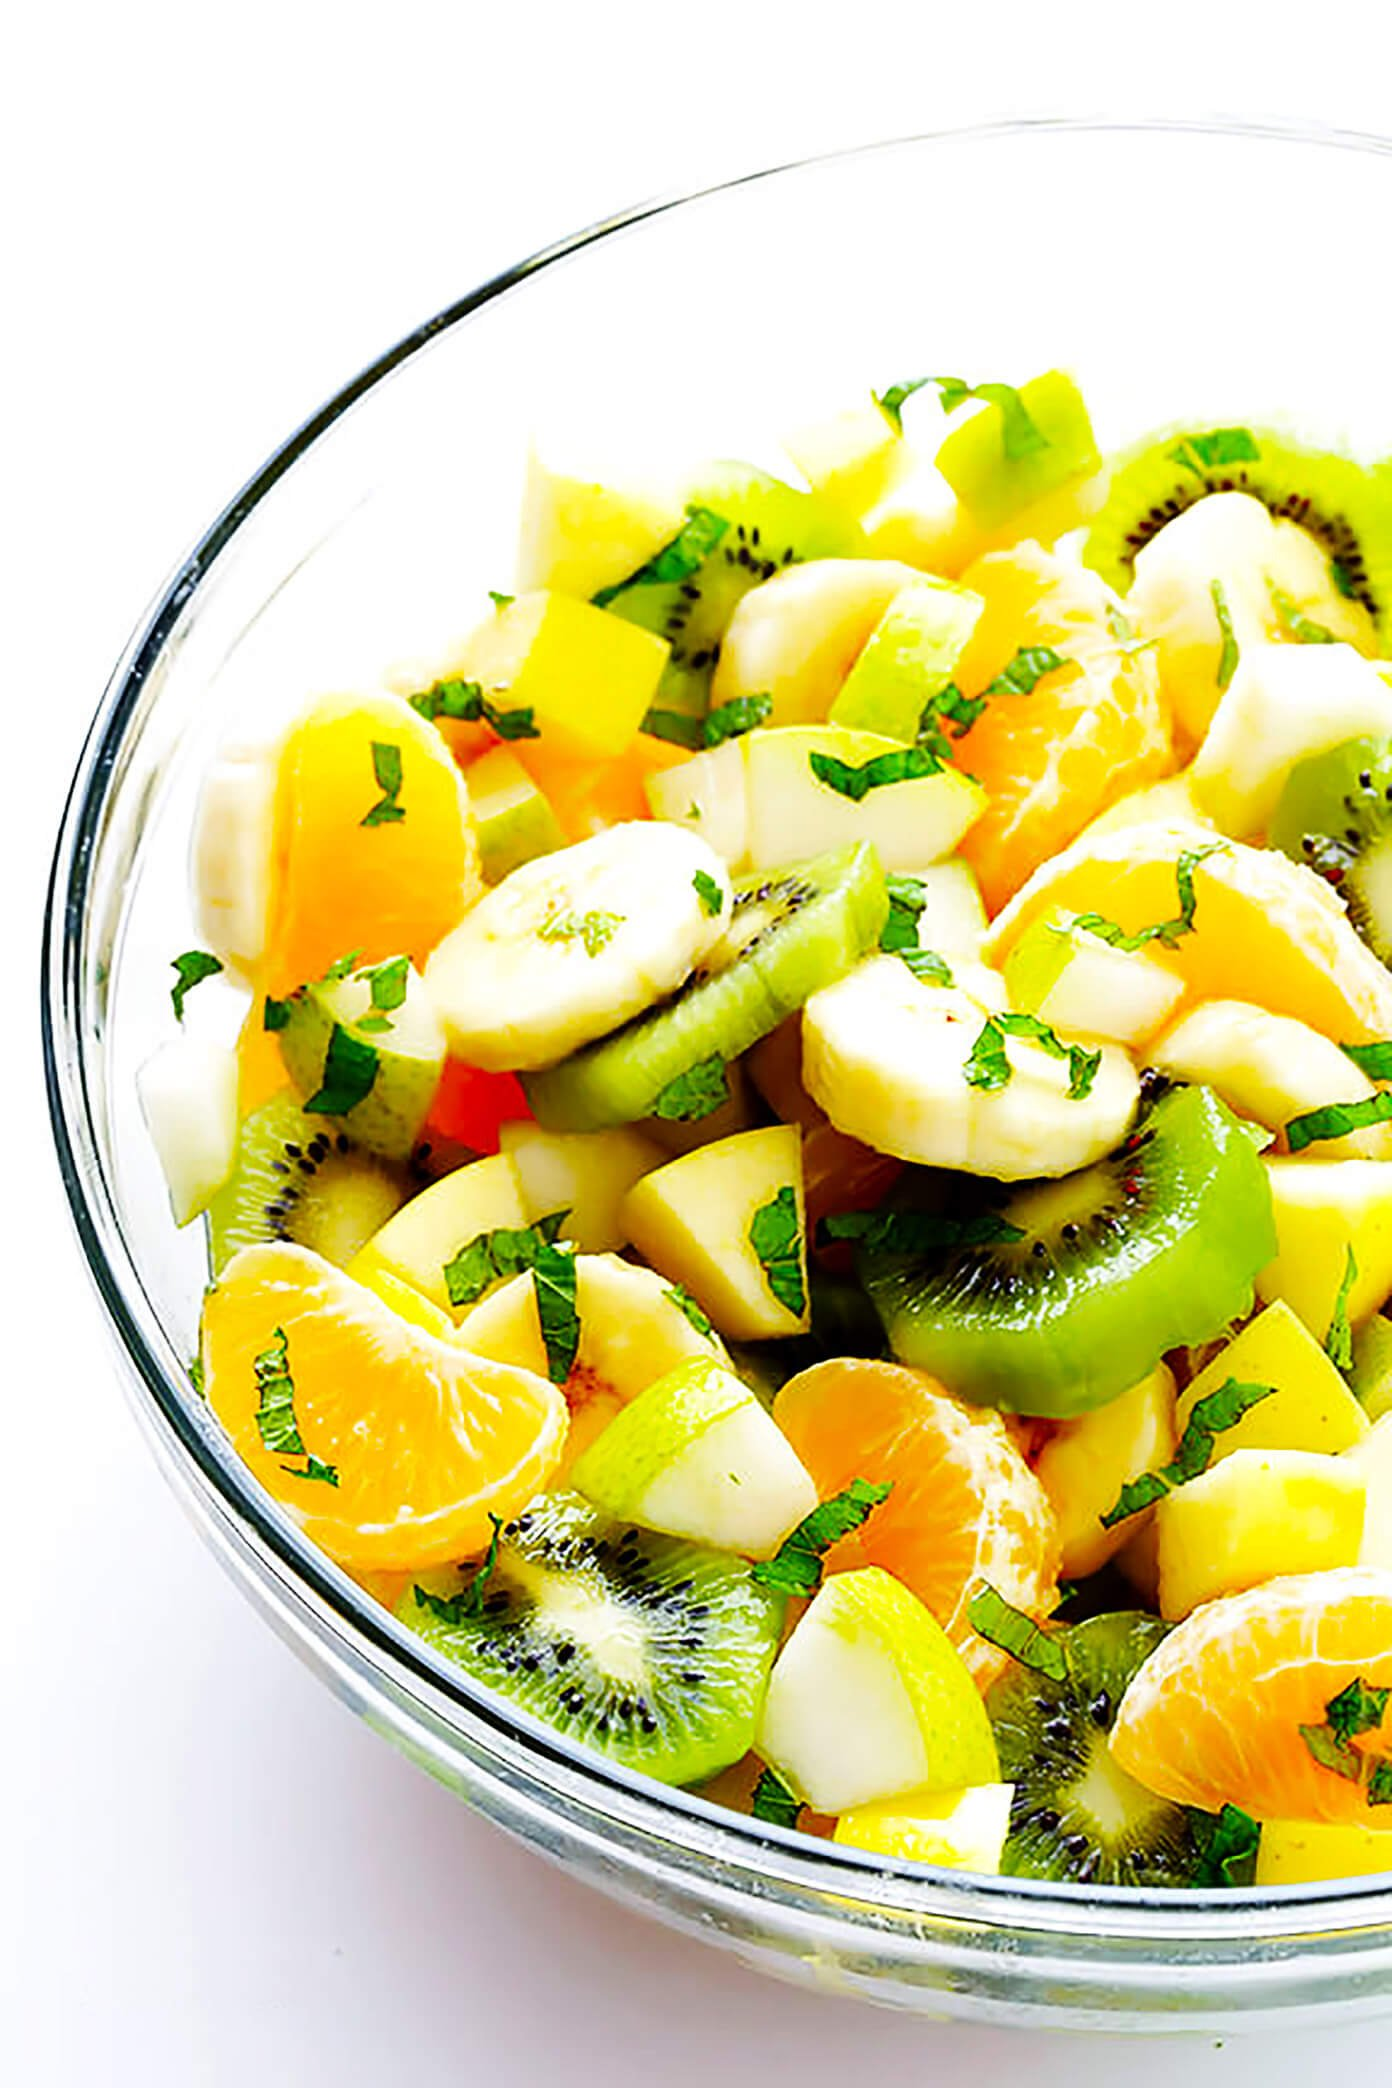 My favorite Easy Winter Fruit Salad recipe is made with apples, bananas, pears, oranges, kiwi, mint and a squeeze of honey-lime dressing. So simple and delicious! (Also gluten-free!)